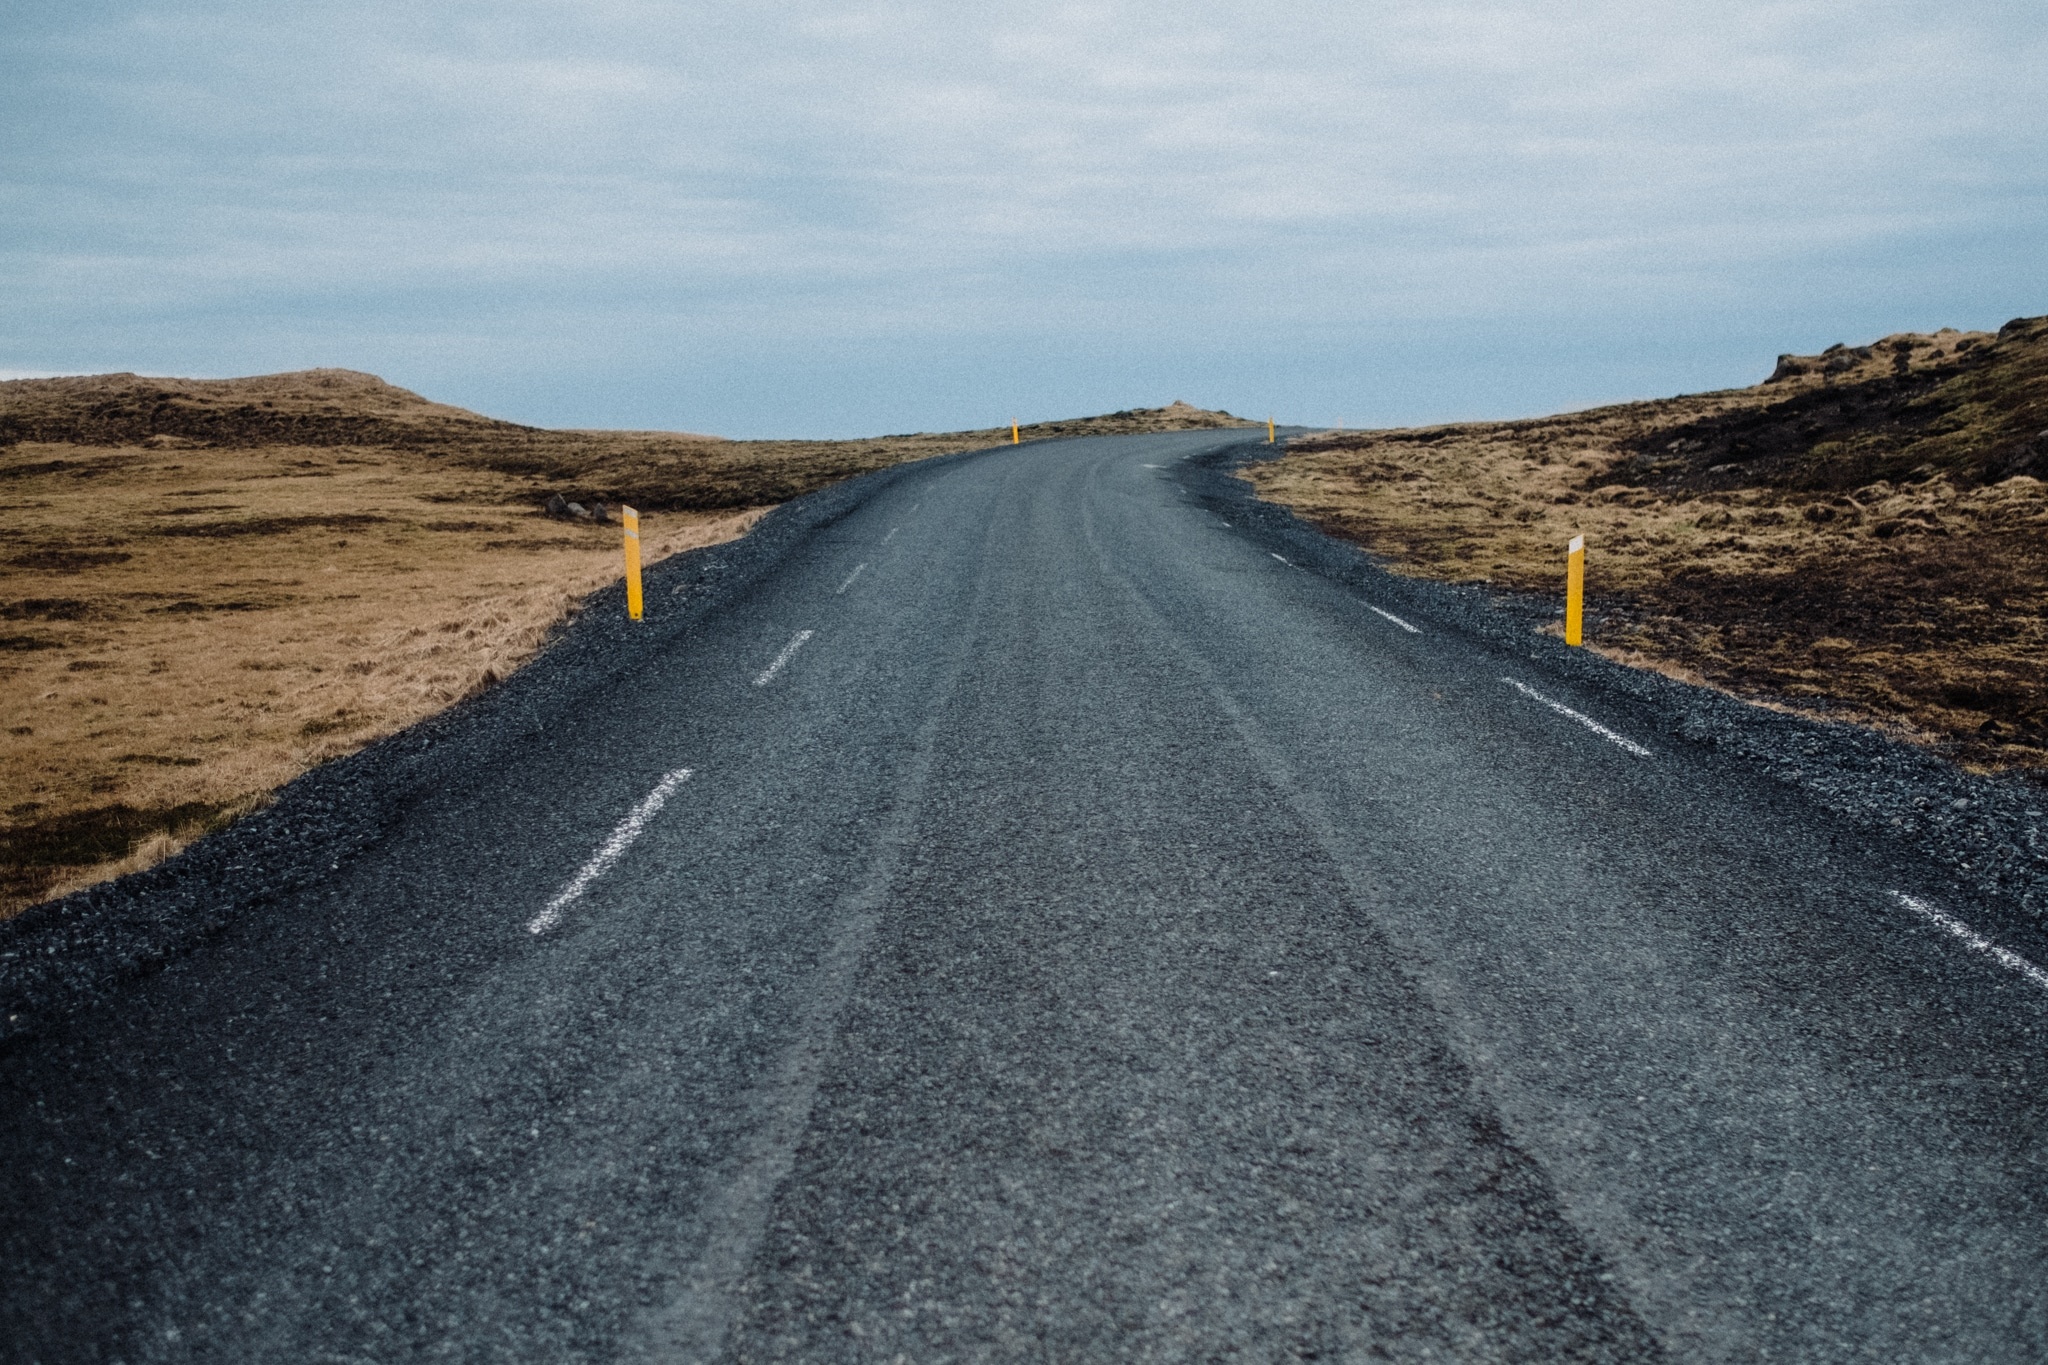 LONG EMPTY ROADS – The Flying Dutchman>